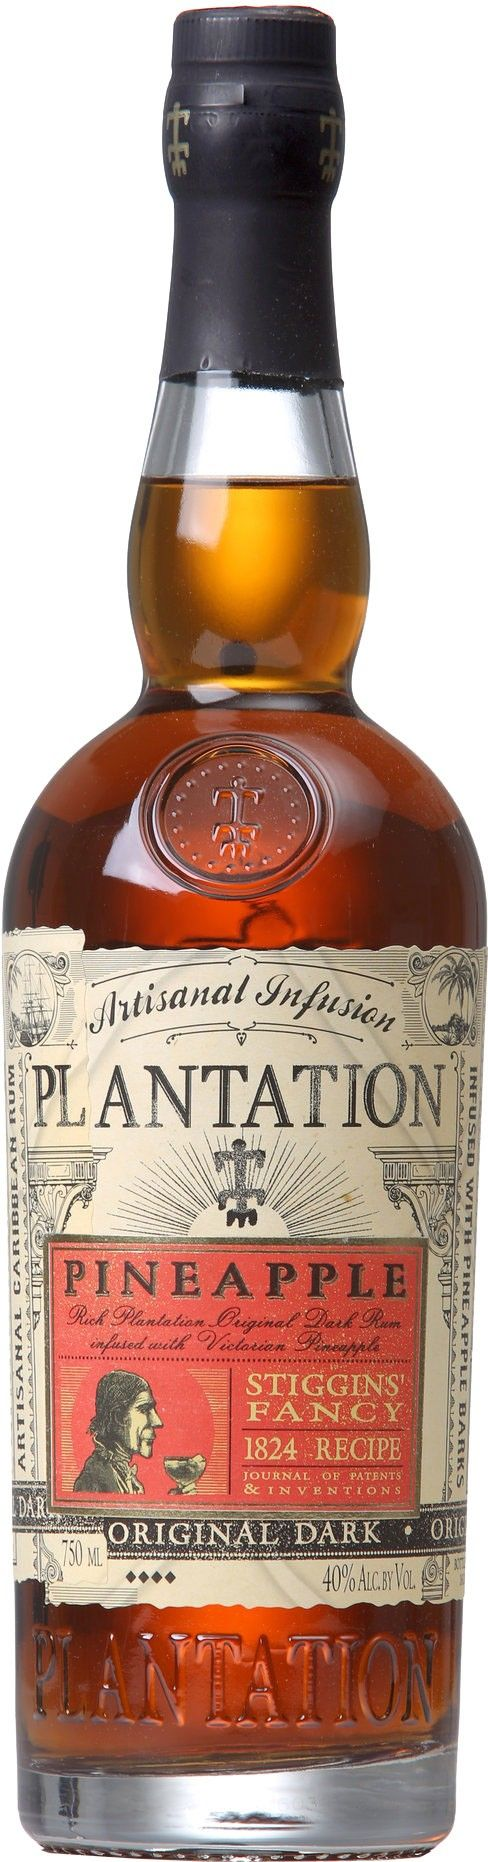 With a nod to Charles Dickens, this rum is made by steeping the flesh of real Queen Victoria pineapples in aged rum. Plantation Stiggins' Fancy Dark Pineapple Rum | @Caskers